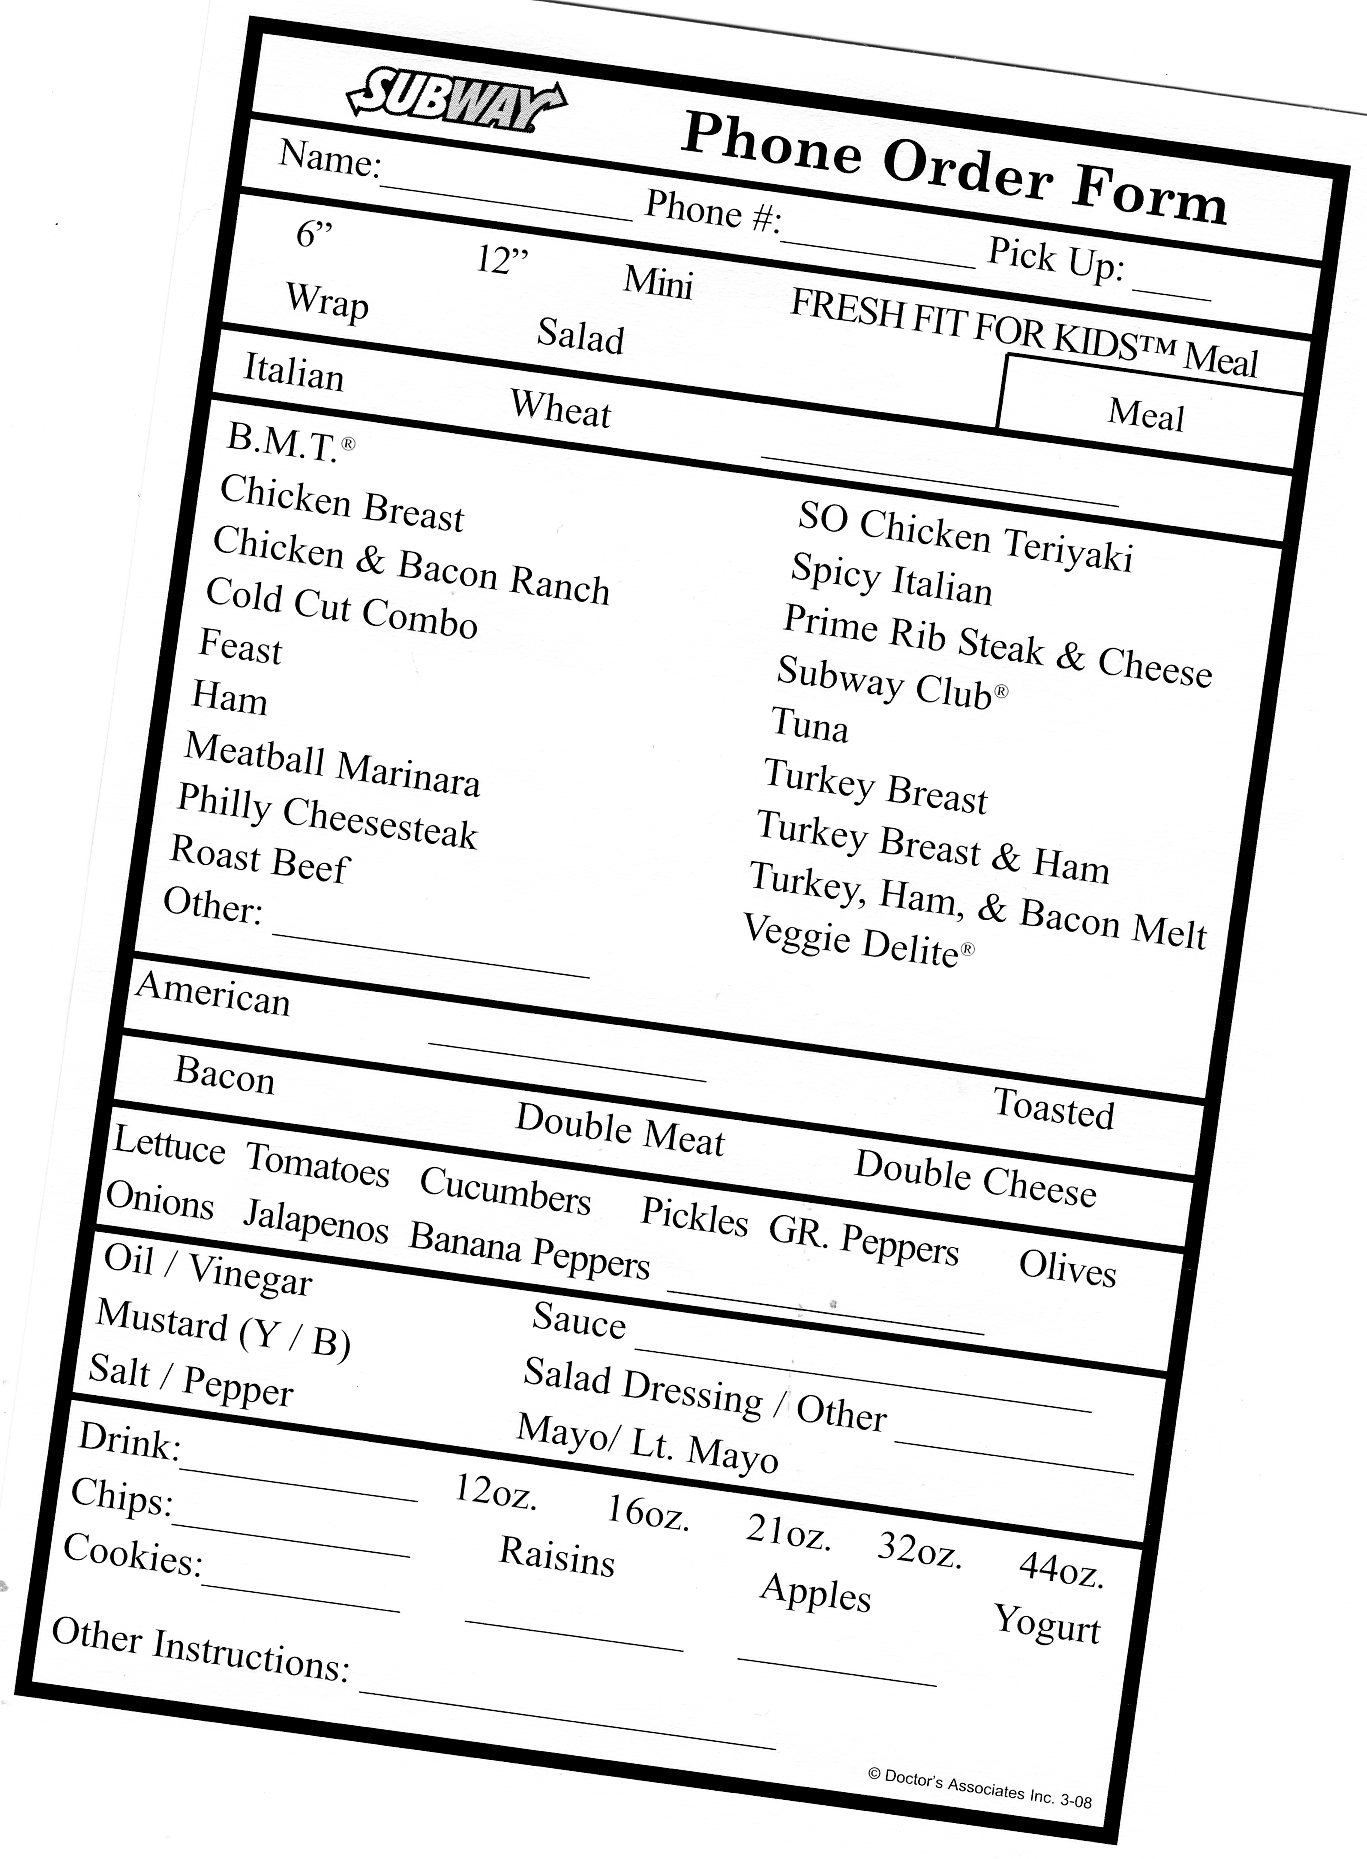 Subway Order Form